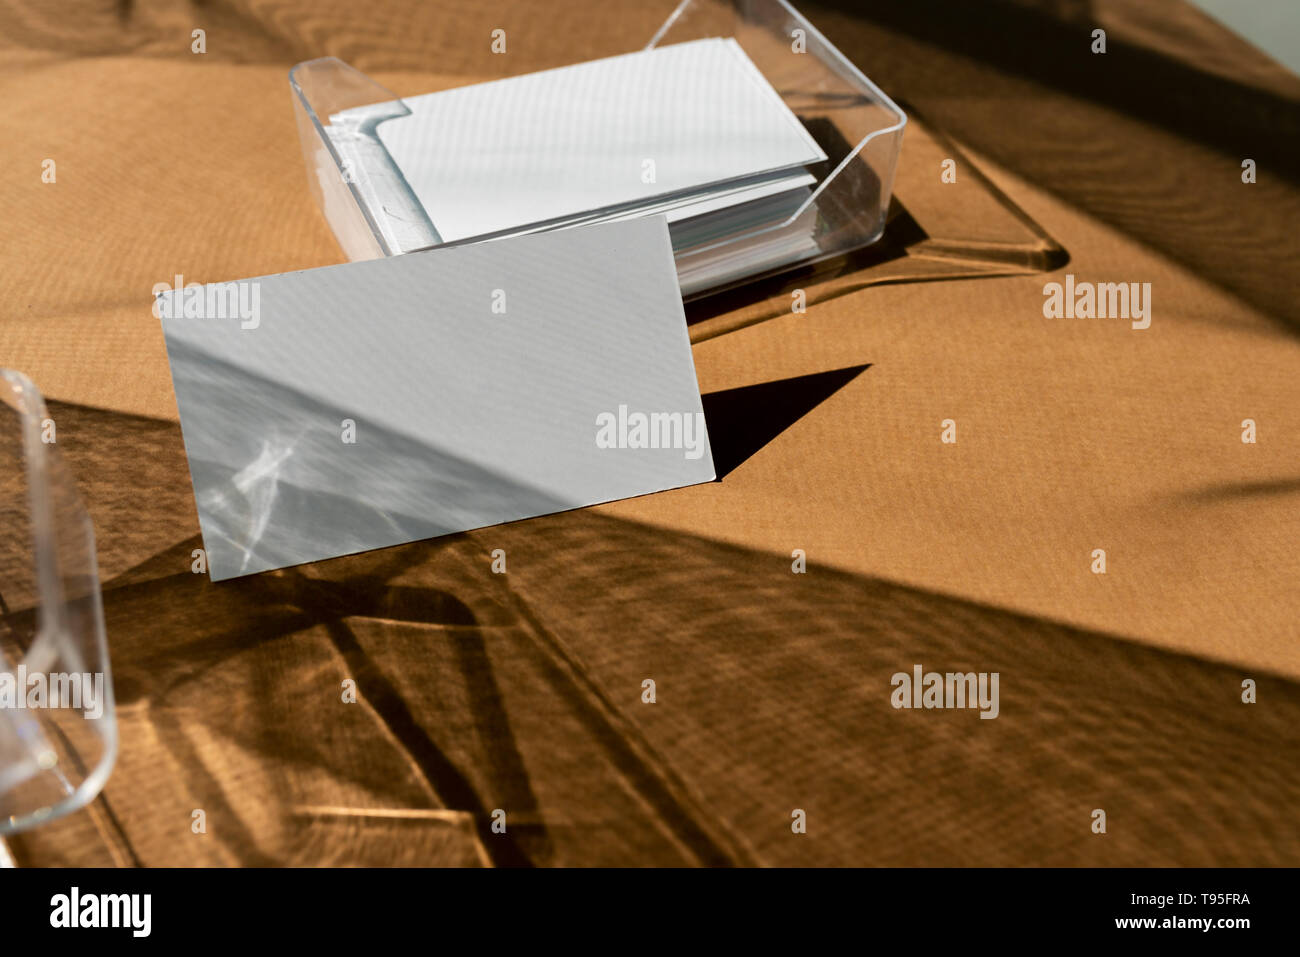 Blank business cards on transparent box, and direct light forming geometric shadows - Stock Image